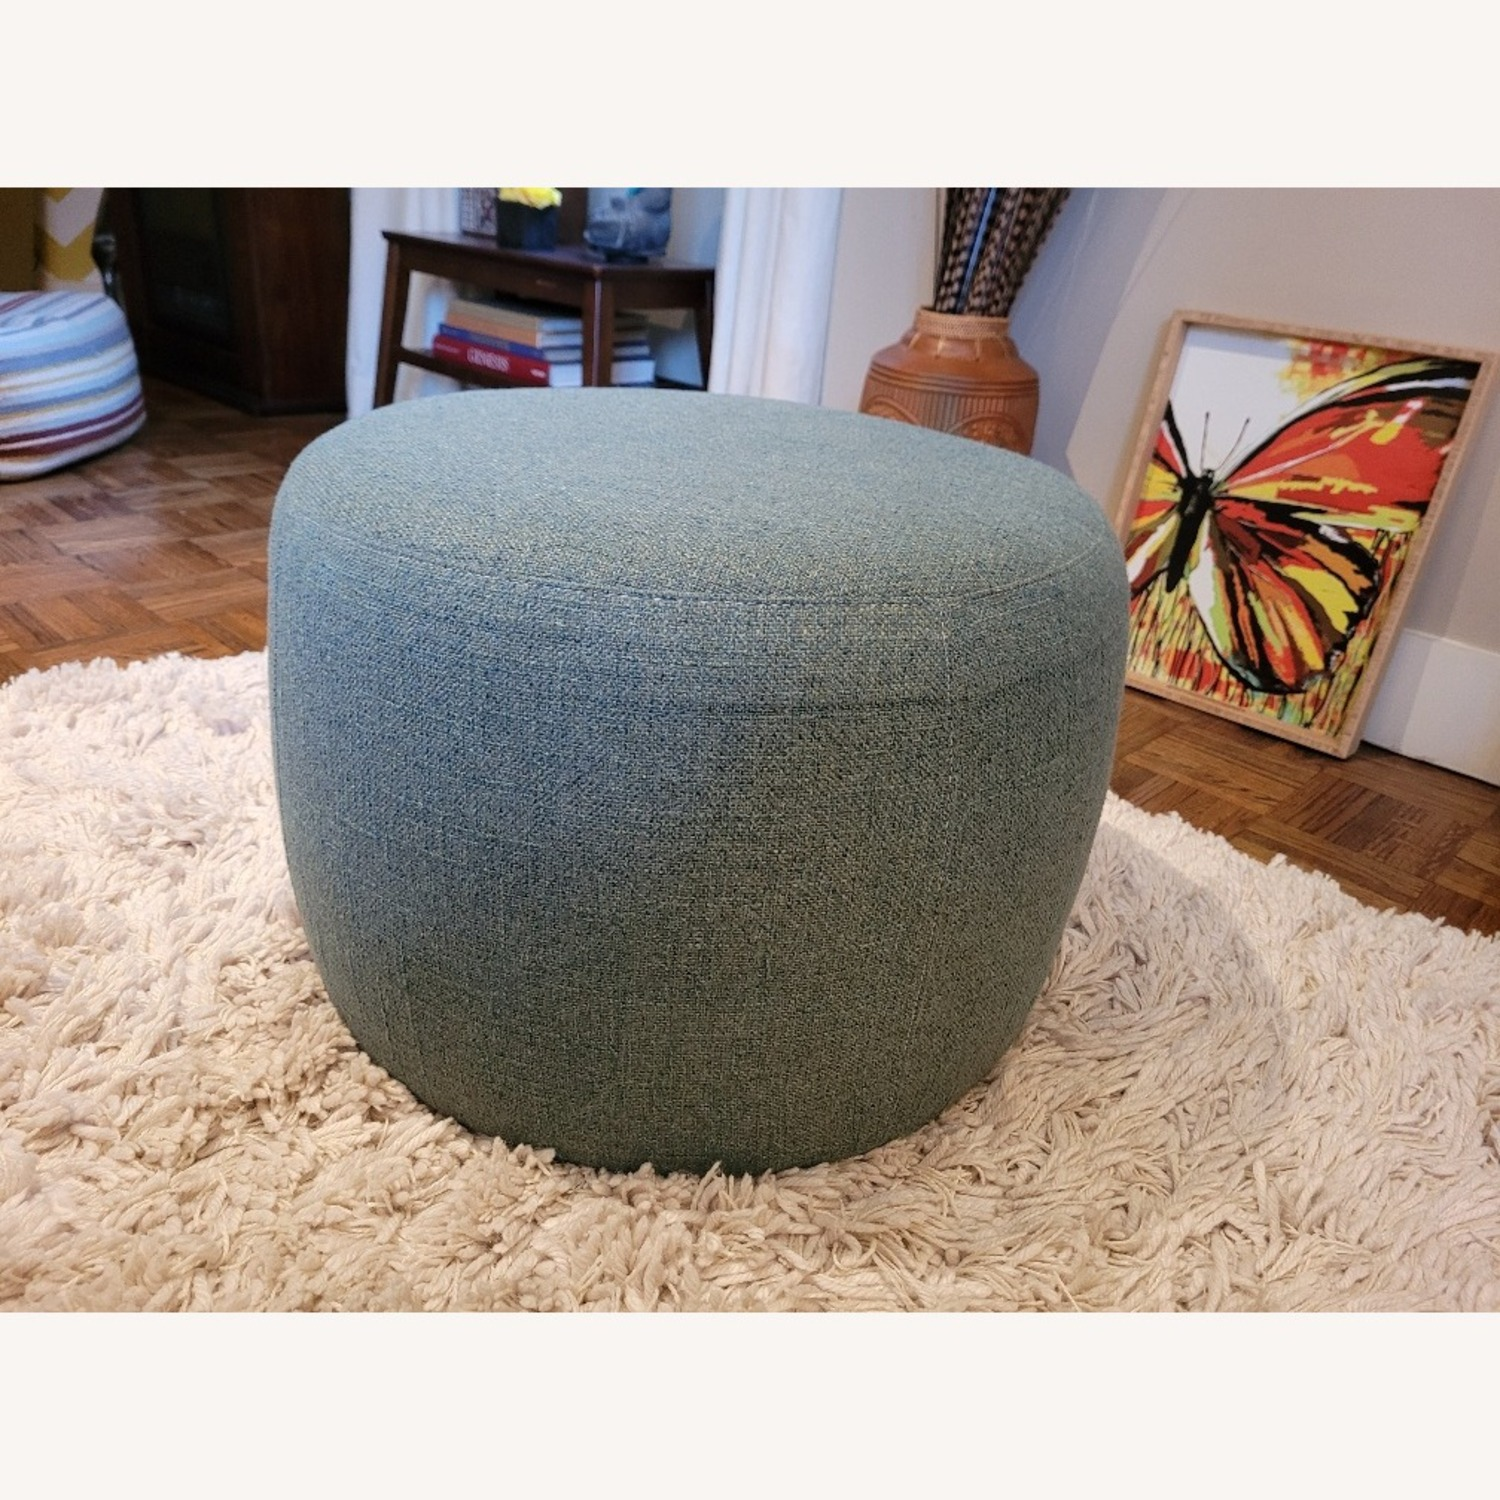 Room & Board Lind Round Ottoman - image-1